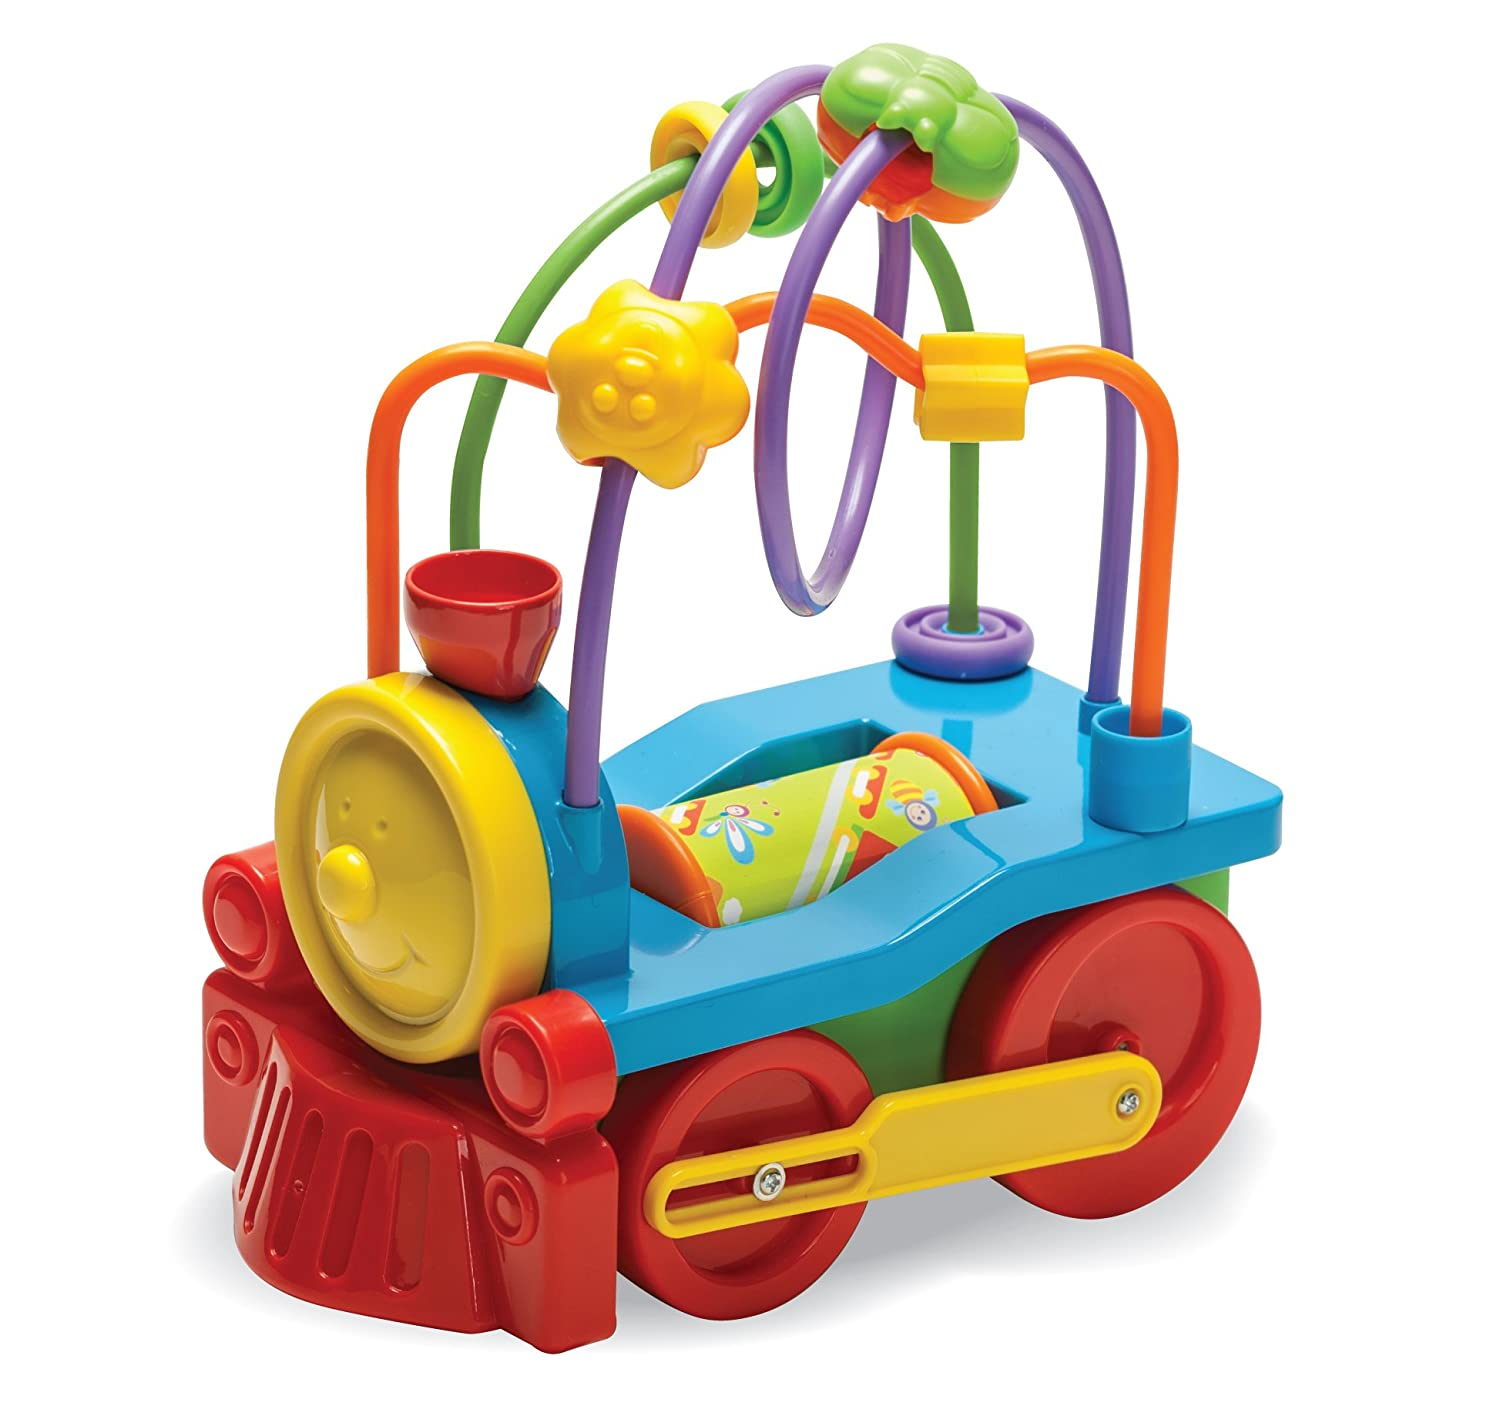 Fun Time Bead Runner Loco Toy (Multicolor) 5908